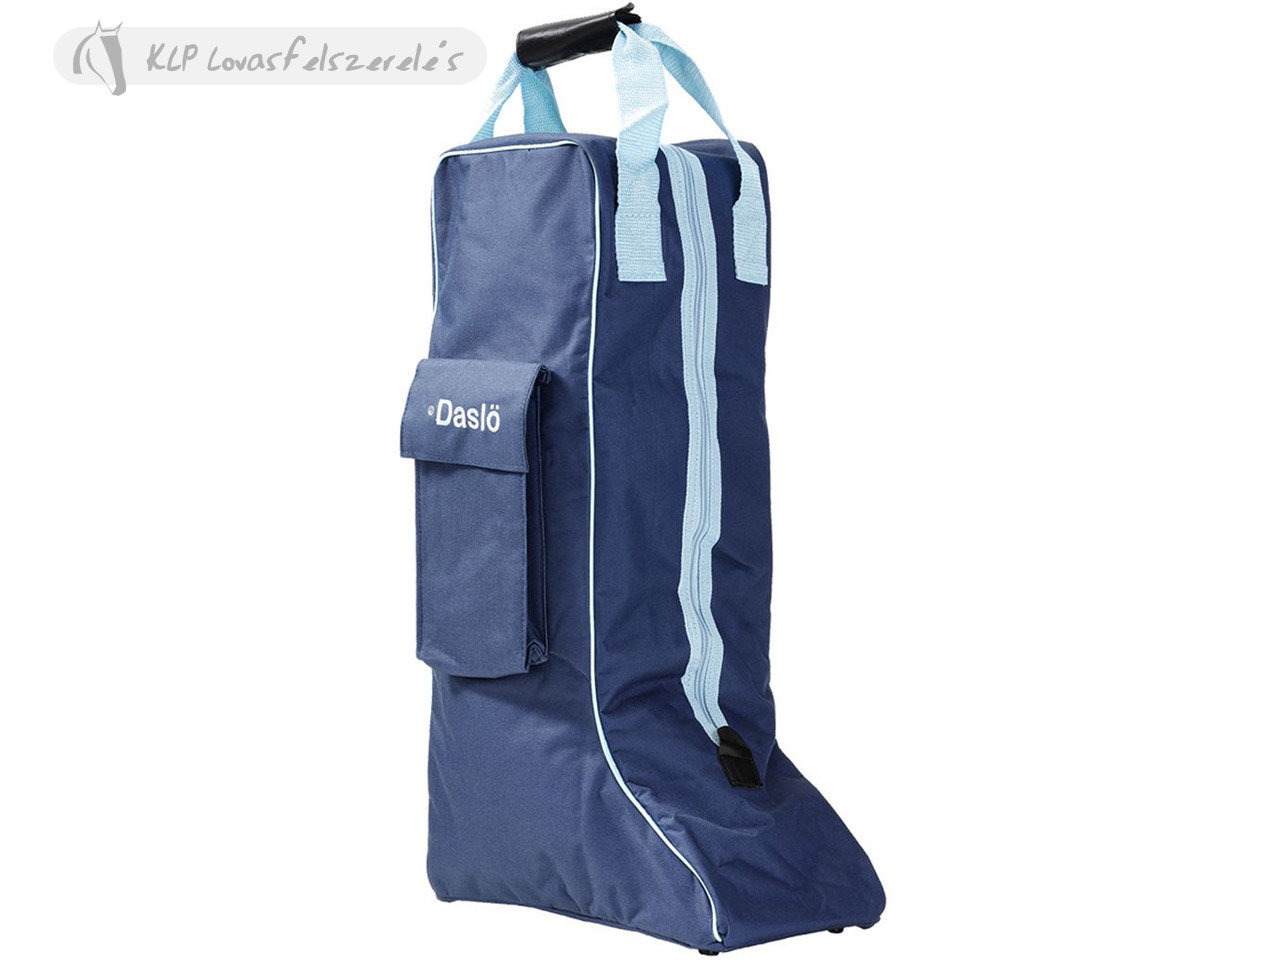 Daslö Boot Carrying Bag